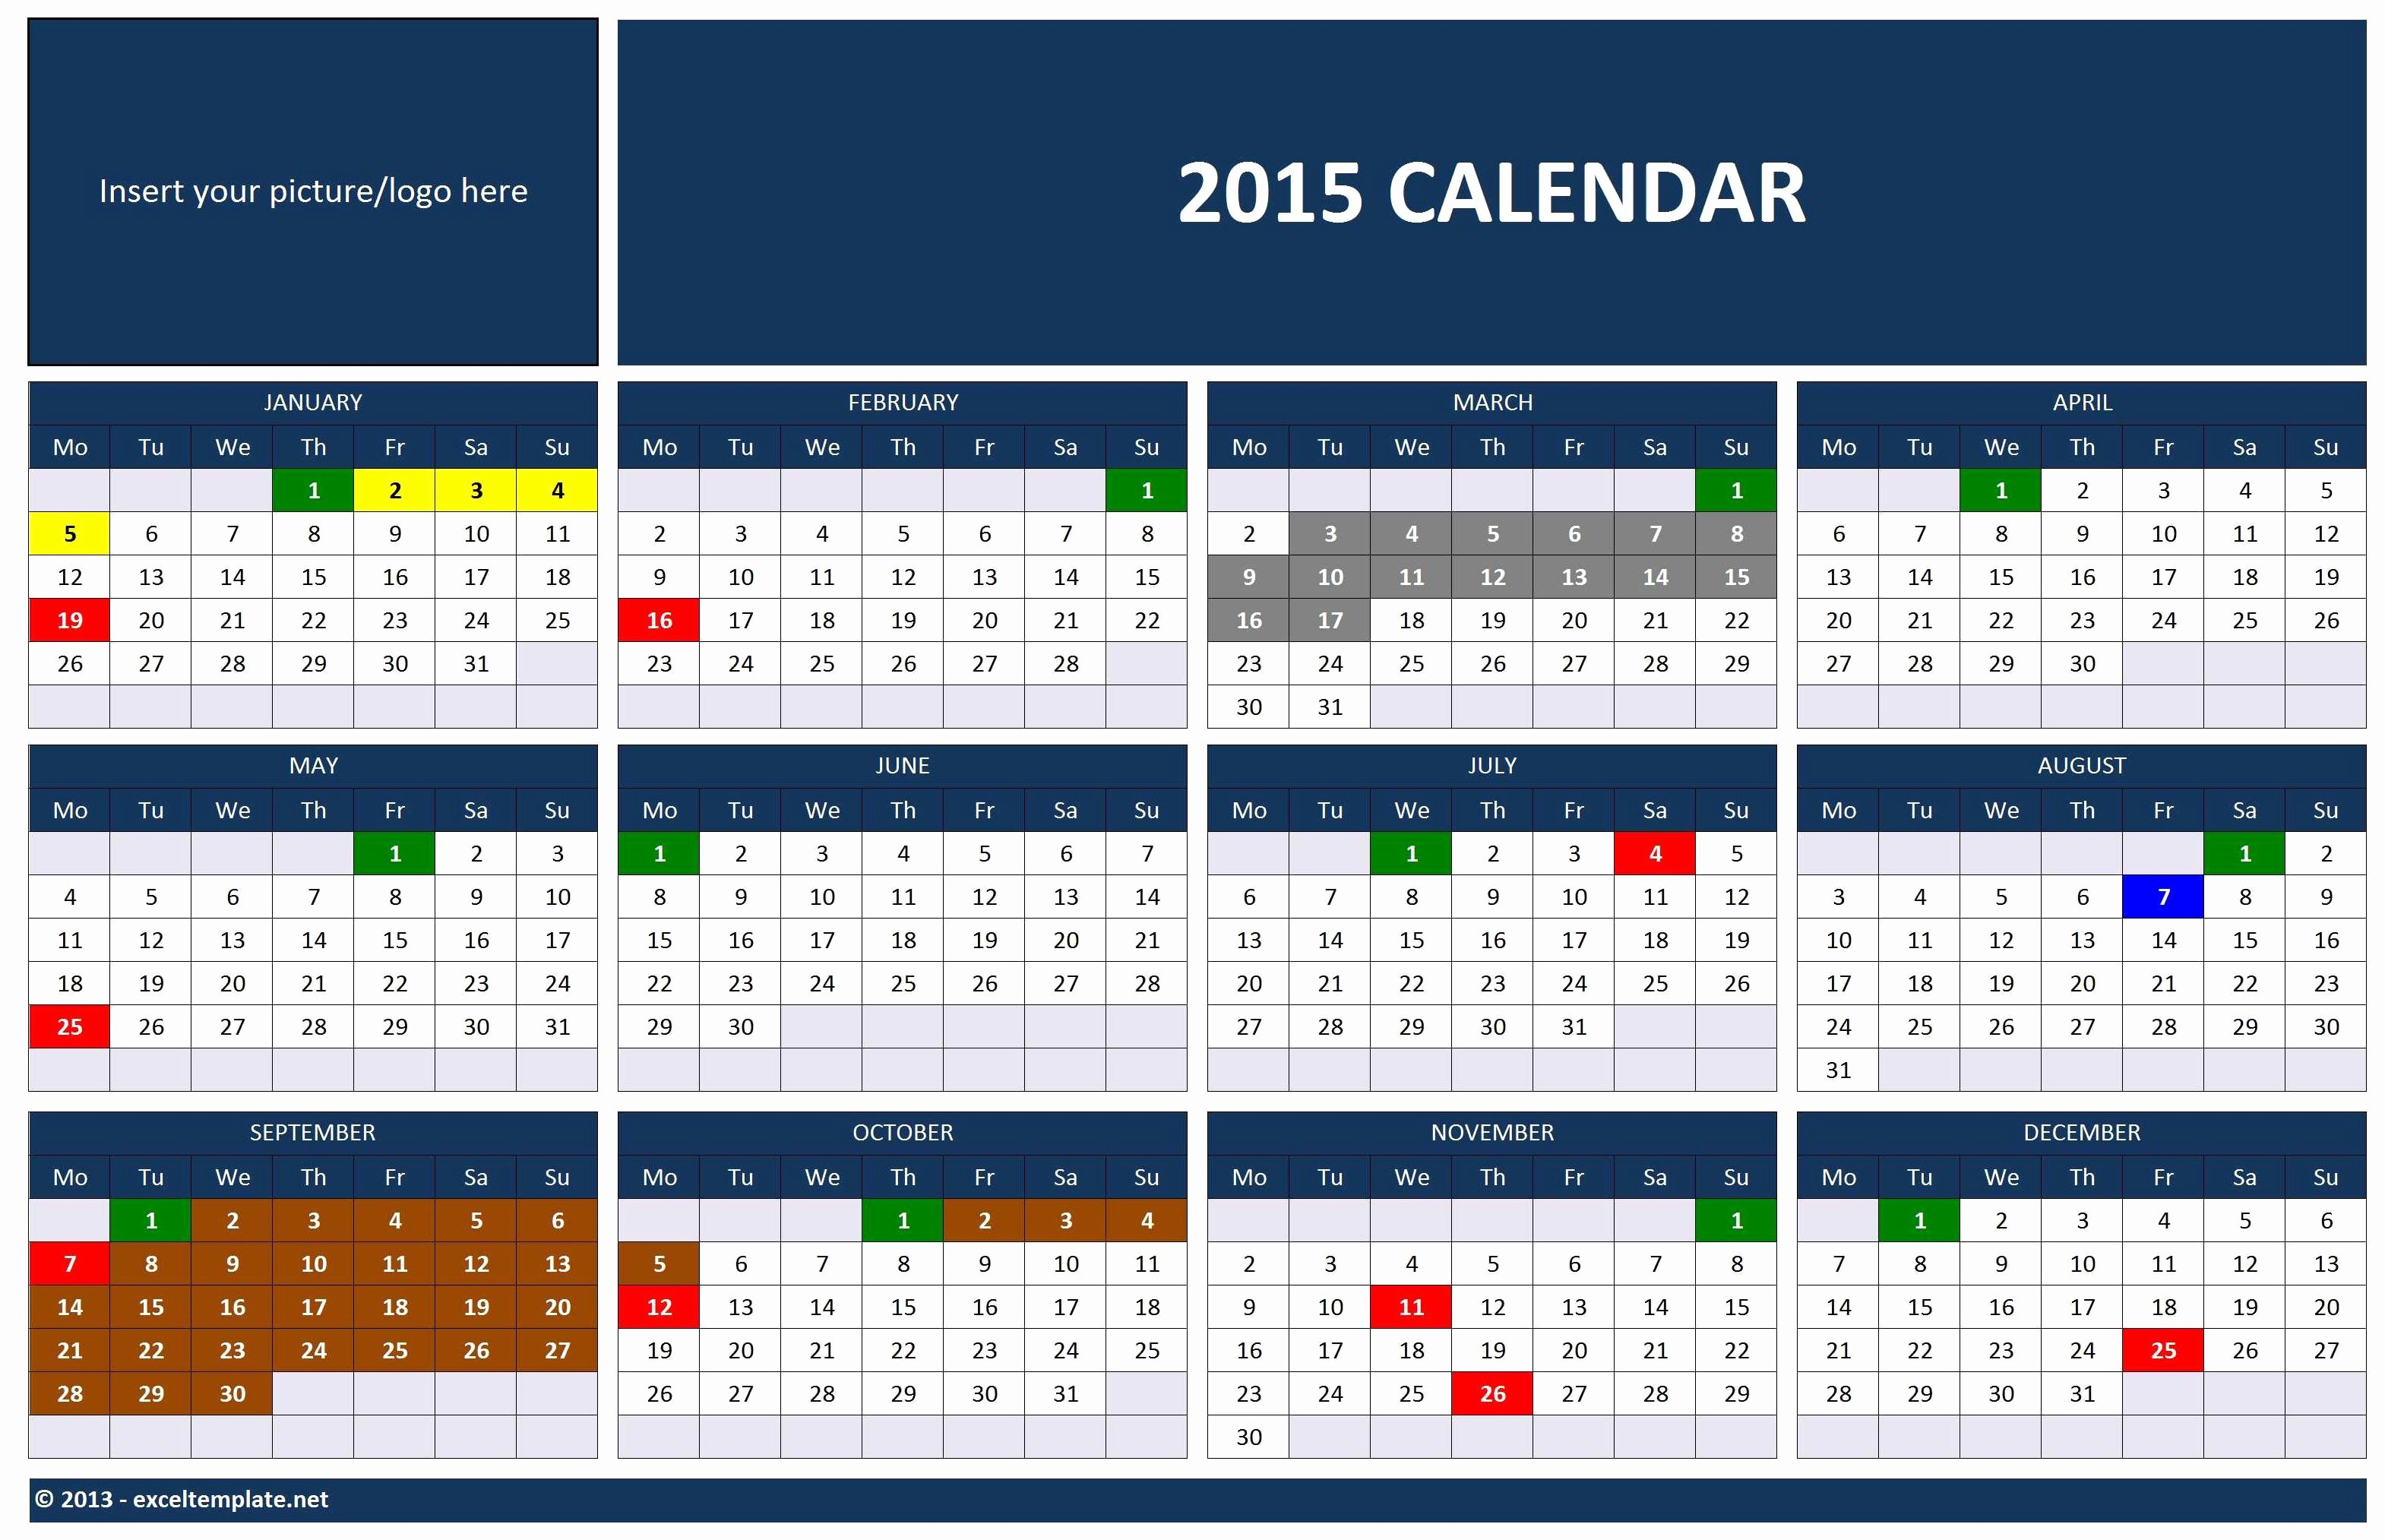 2015 Yearly Calendar Printable Landscape Awesome New Year Calendar 2015